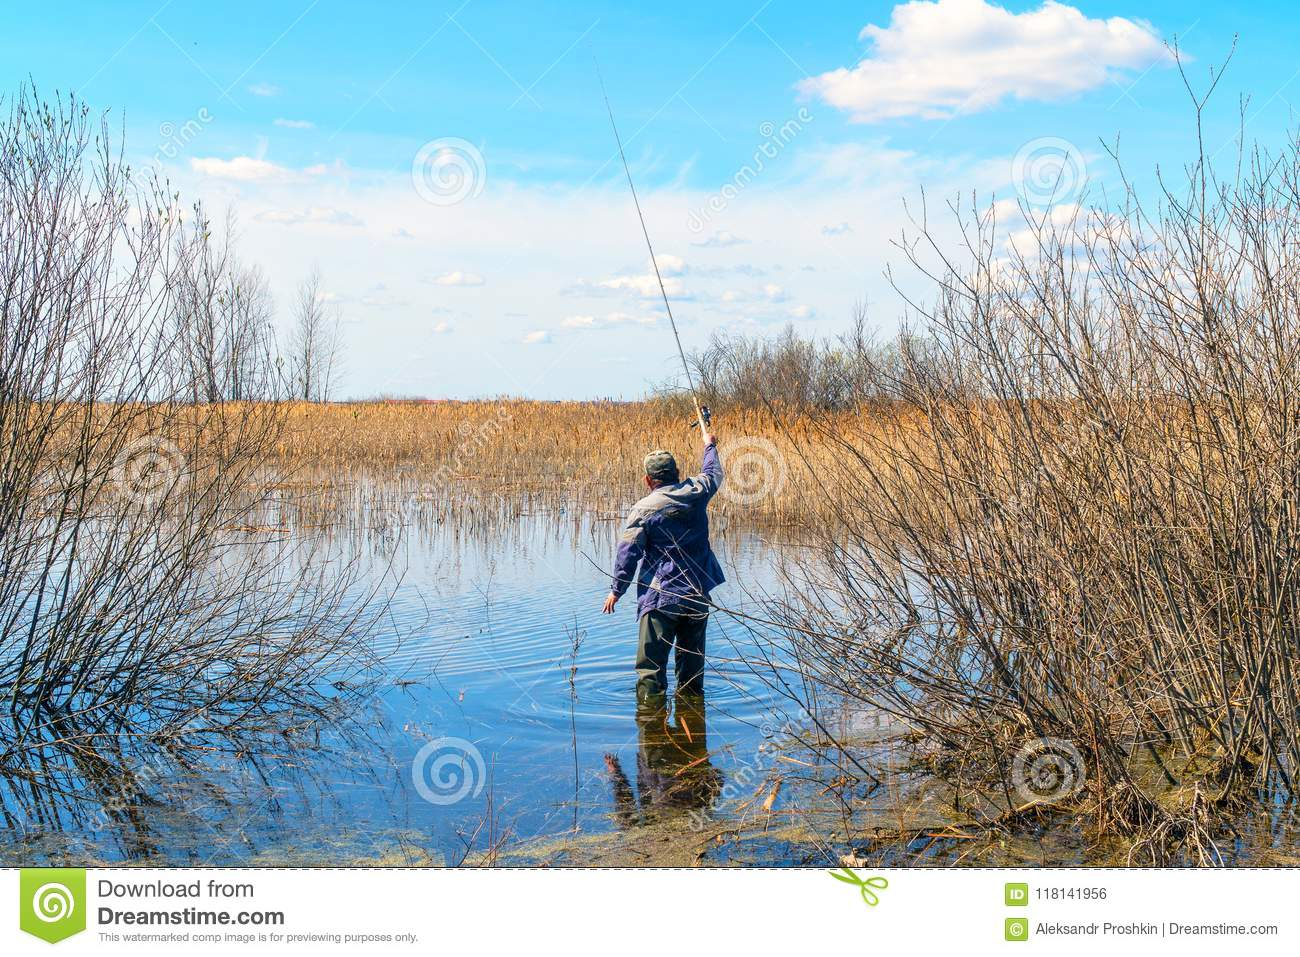 Fisherman with fishing rod stands in the water